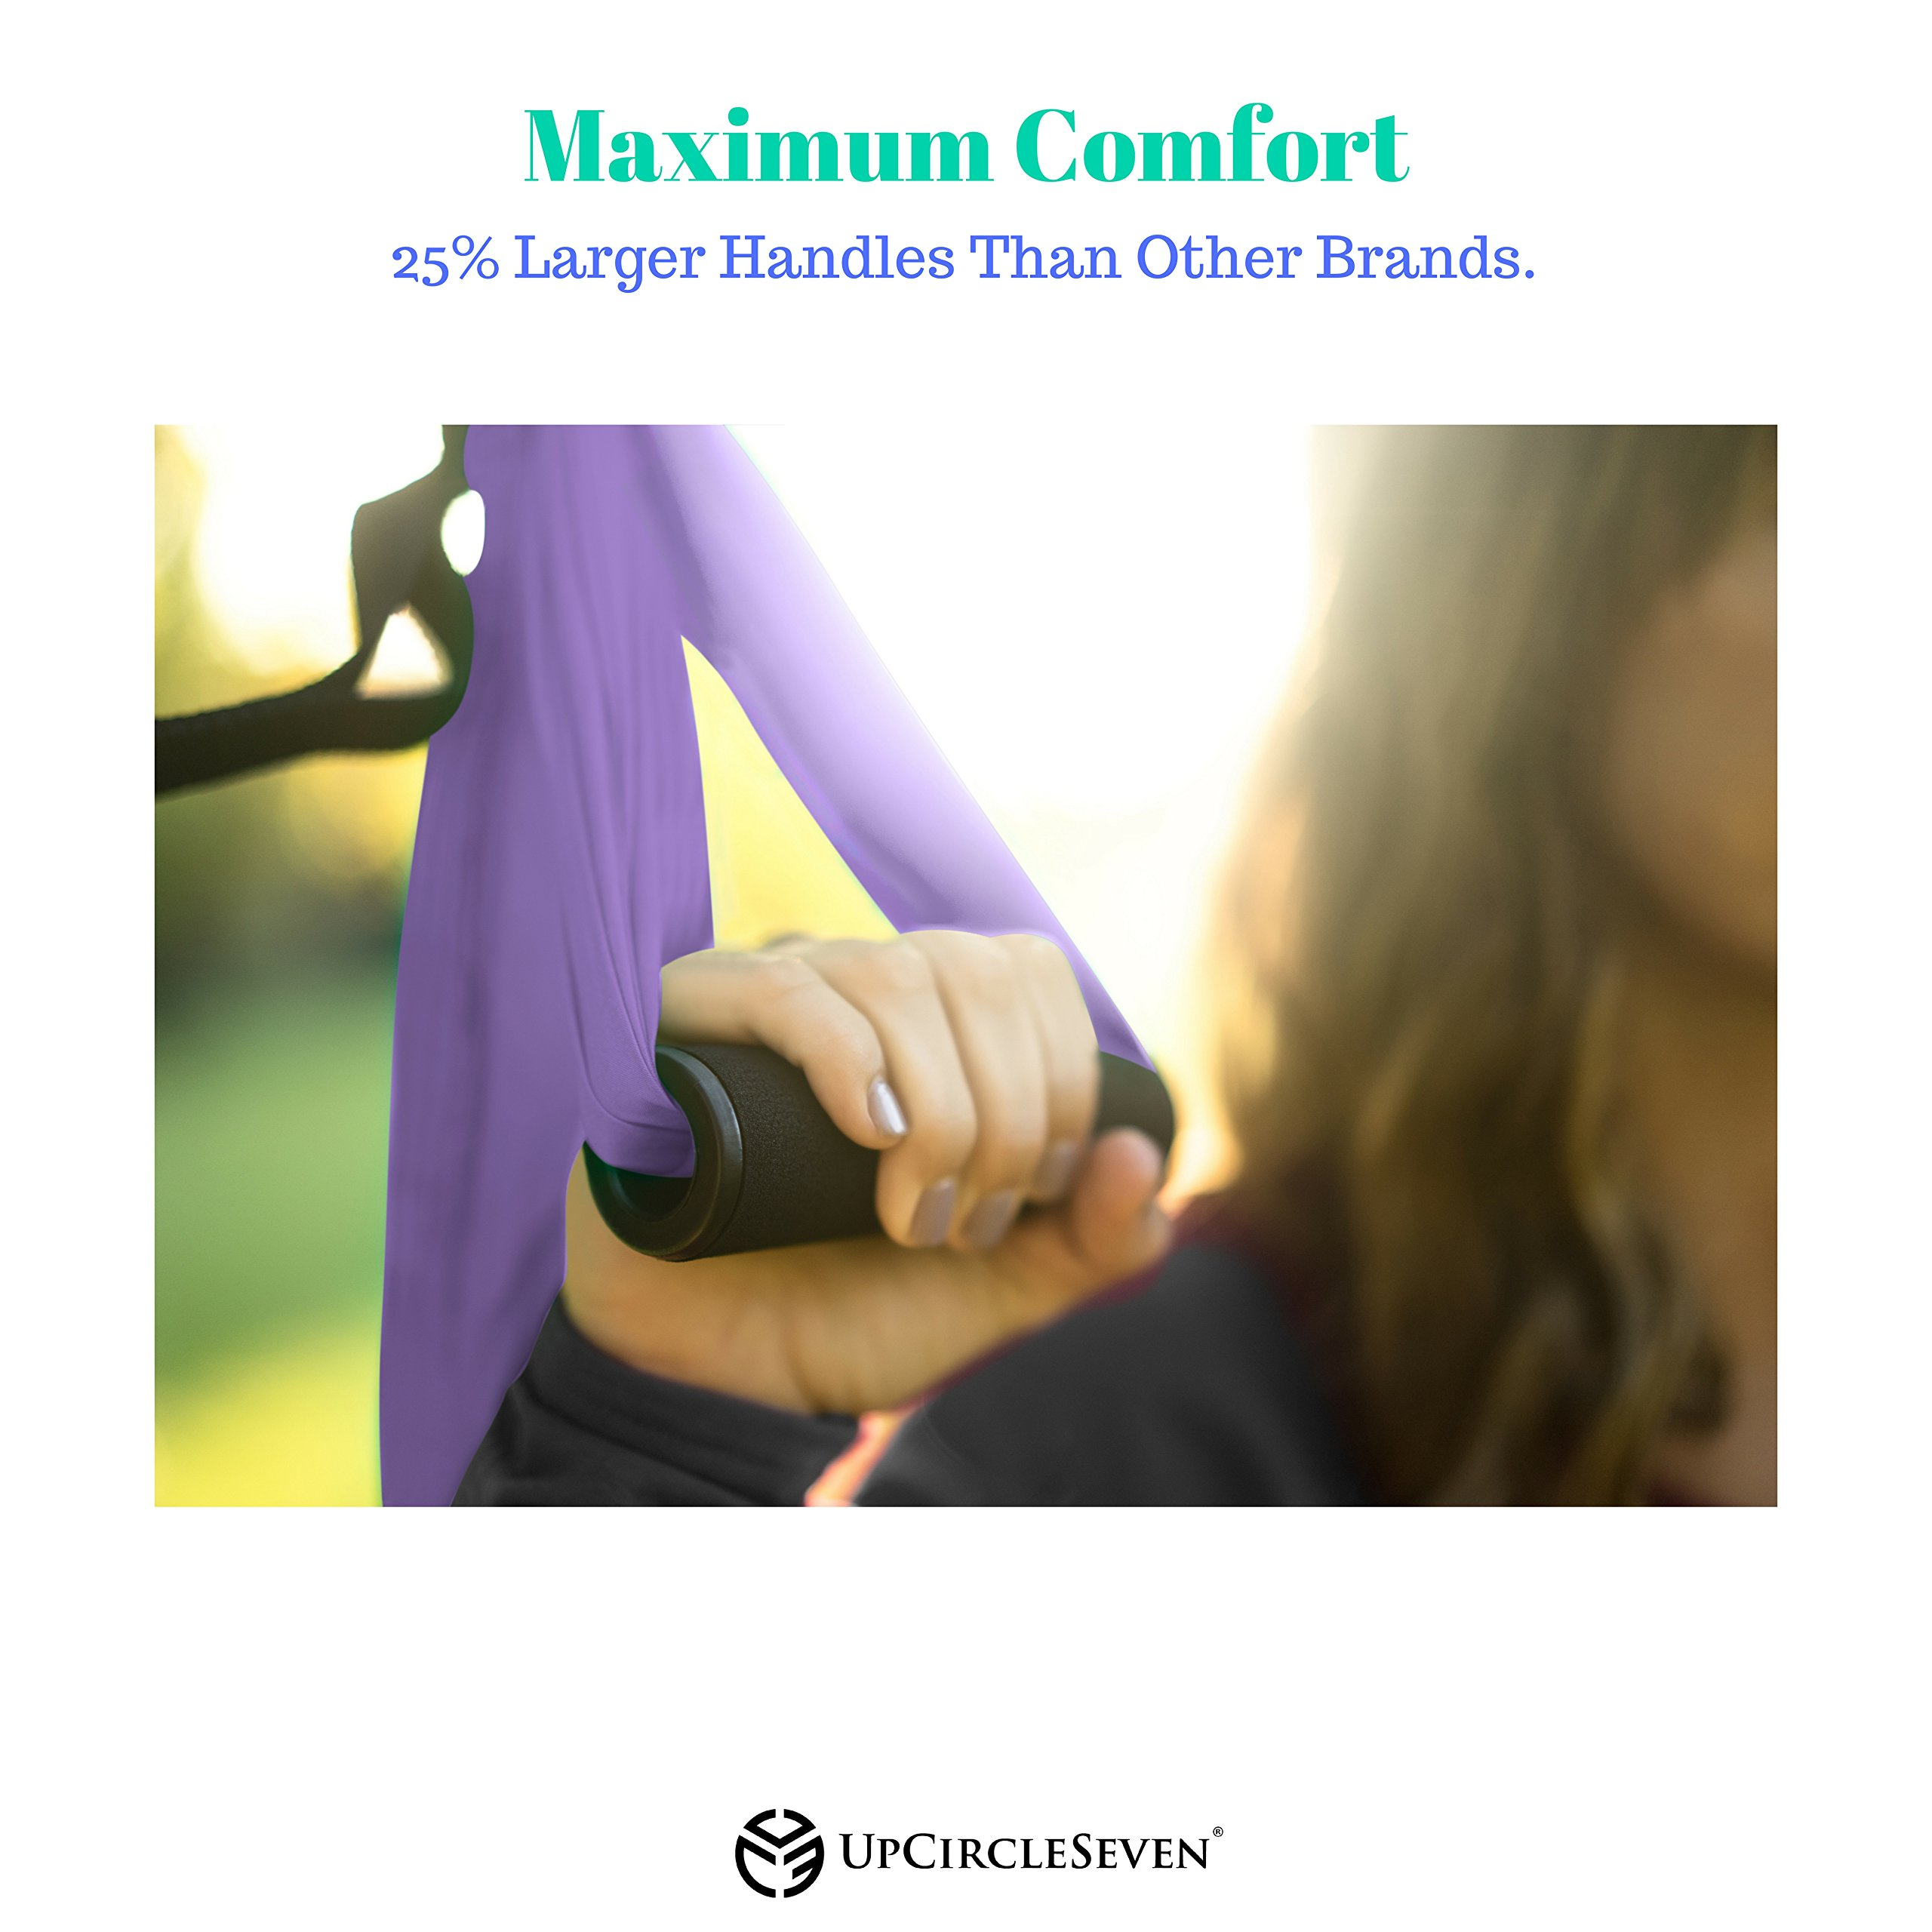 UpCircleSeven Aerial Yoga Swing - Ultra Strong Antigravity Yoga Hammock/Sling for Air Yoga Inversion Exercises - 2 Extensions Straps Included (Purple) by UpCircleSeven (Image #6)